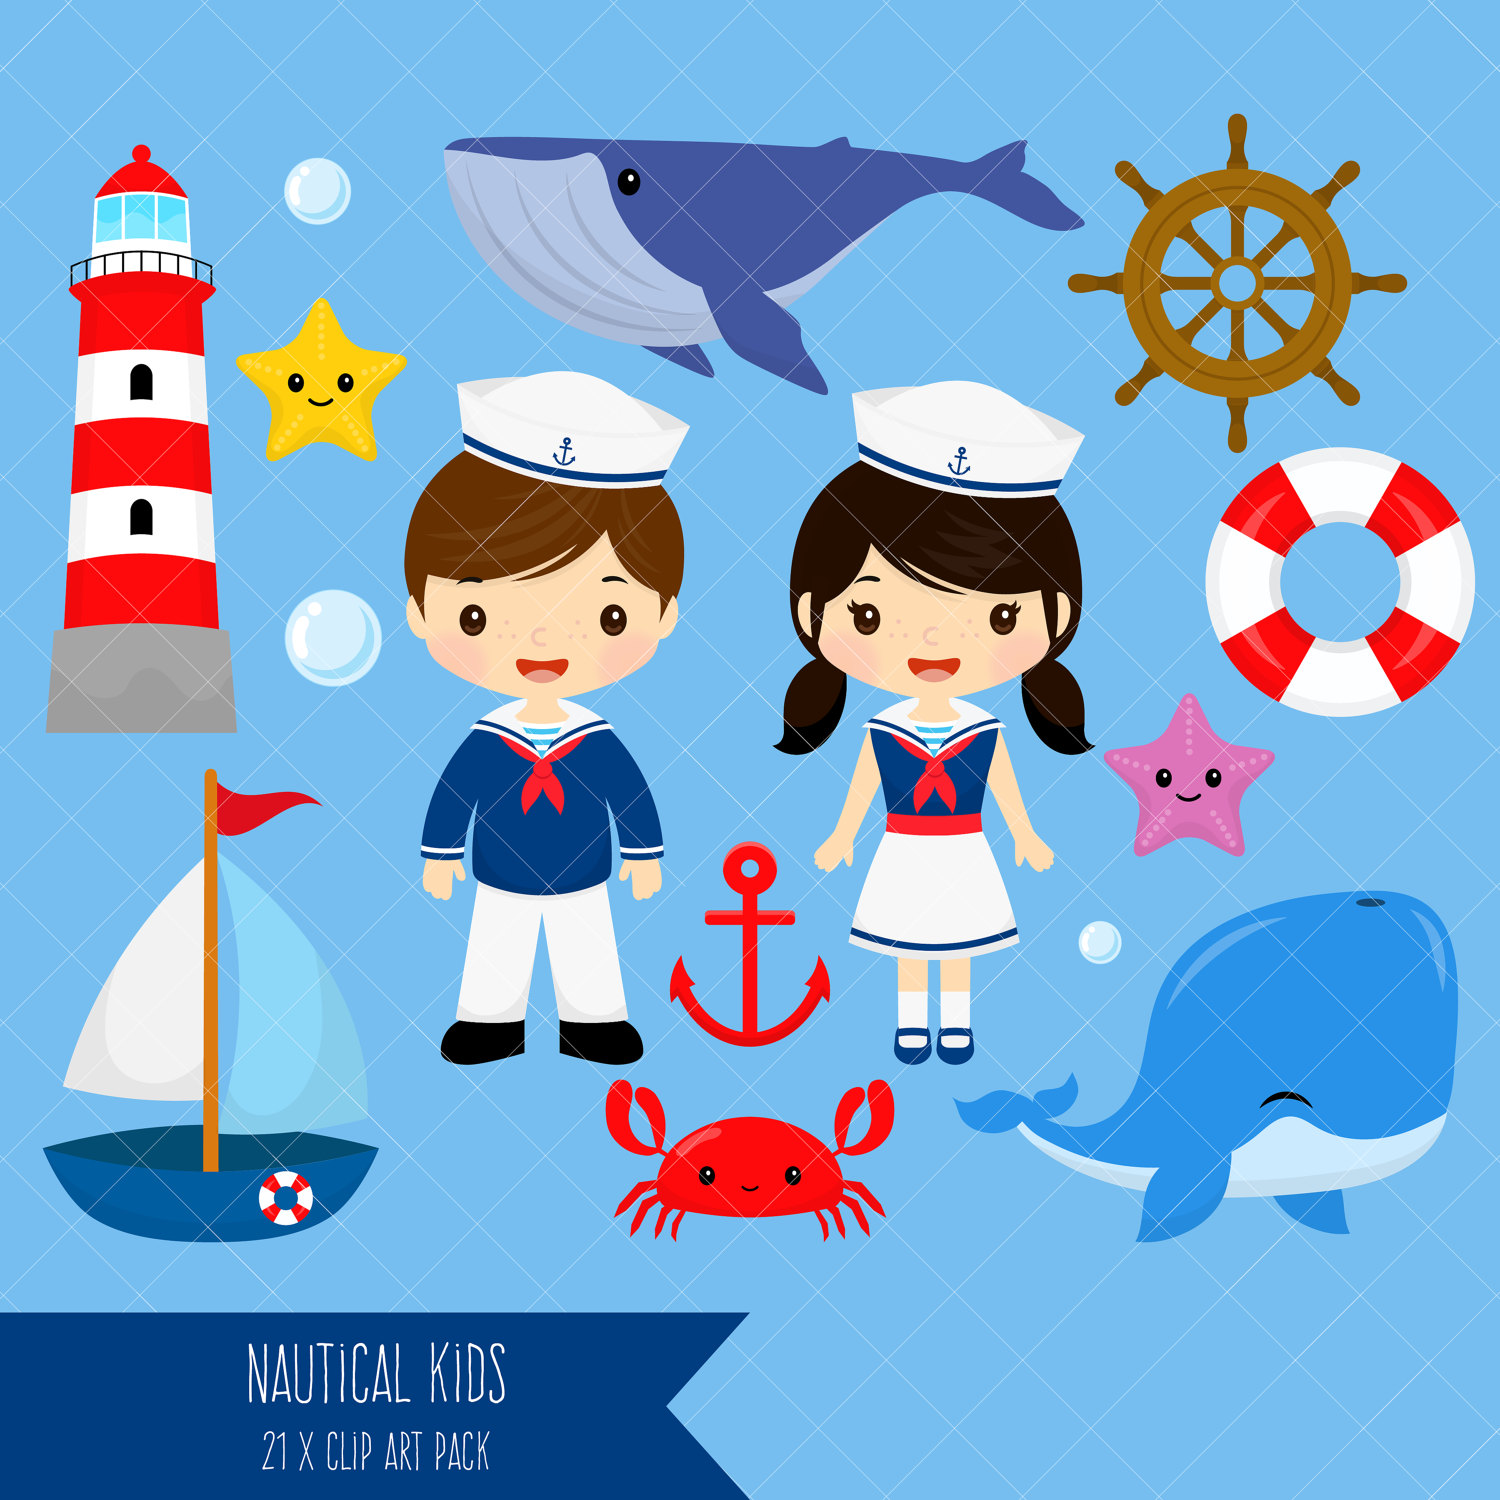 1500x1500 Nautical Kids Clipart Sailor Boy Clip Art Sailor Girl Clip